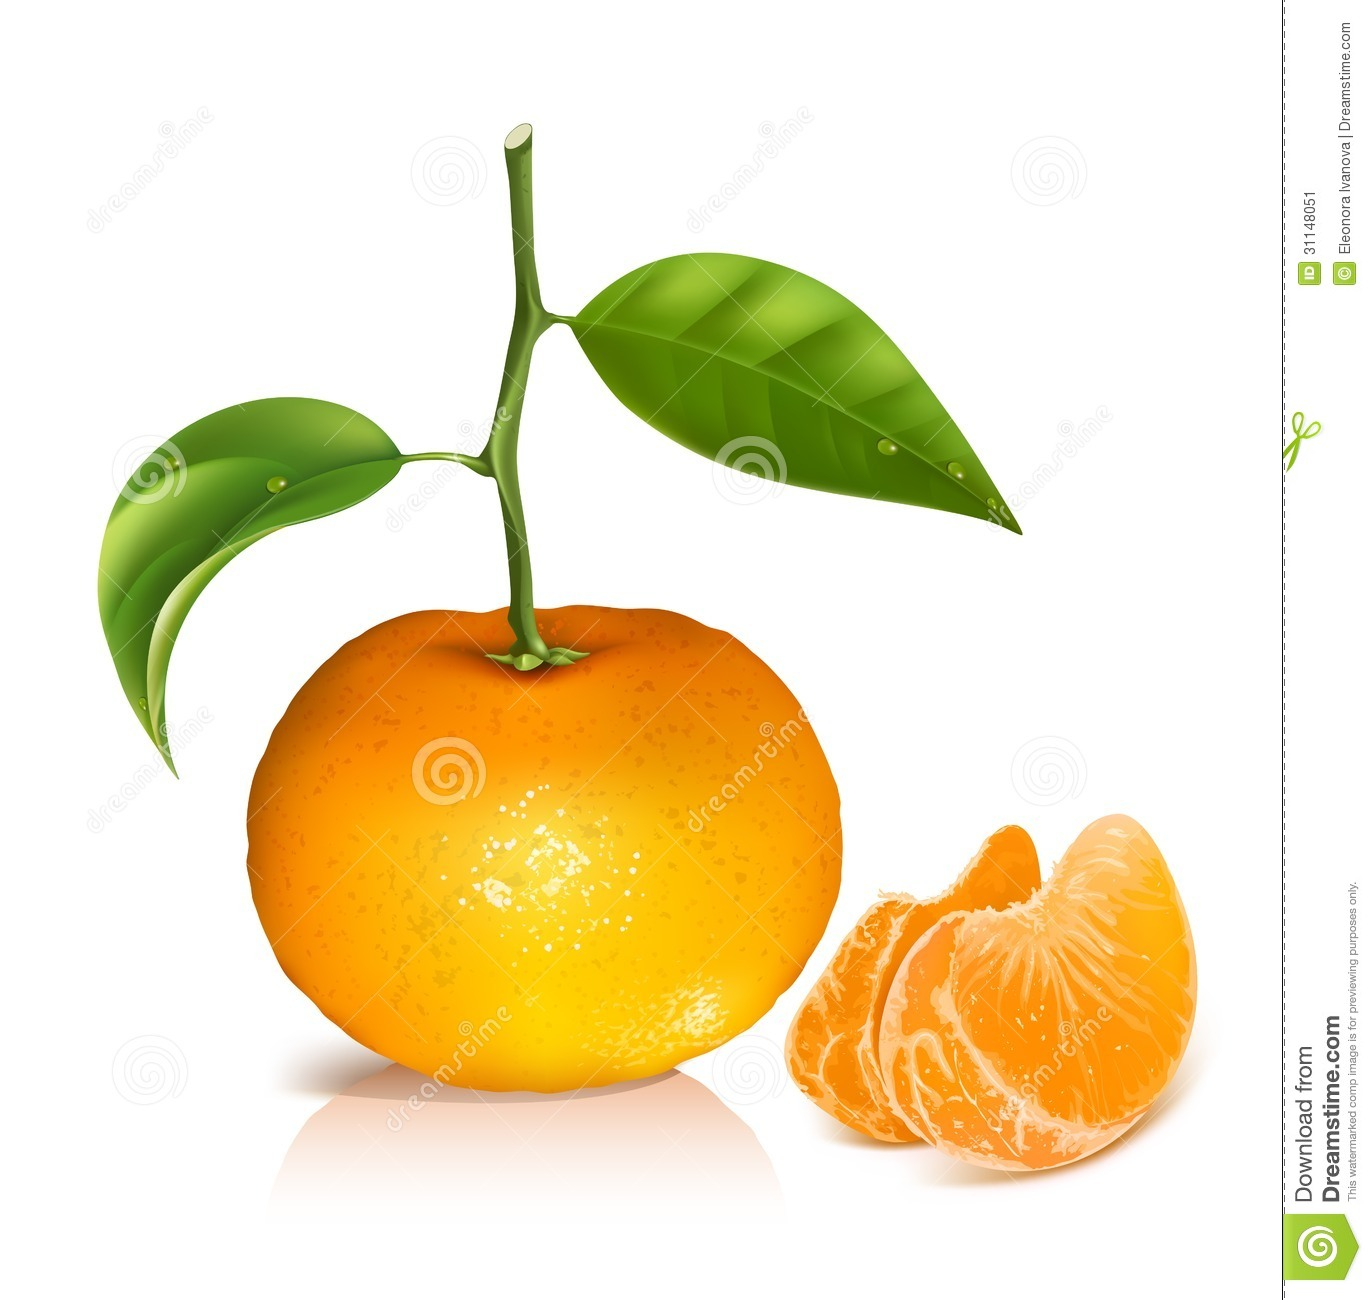 Royalty Free Stock Photography Lemon Tree Isolated Bright Yellow Pot Image35844947 moreover Orange Clipart together with Annatto Ground likewise Mestizo besides Osage orange. on orange juice tree